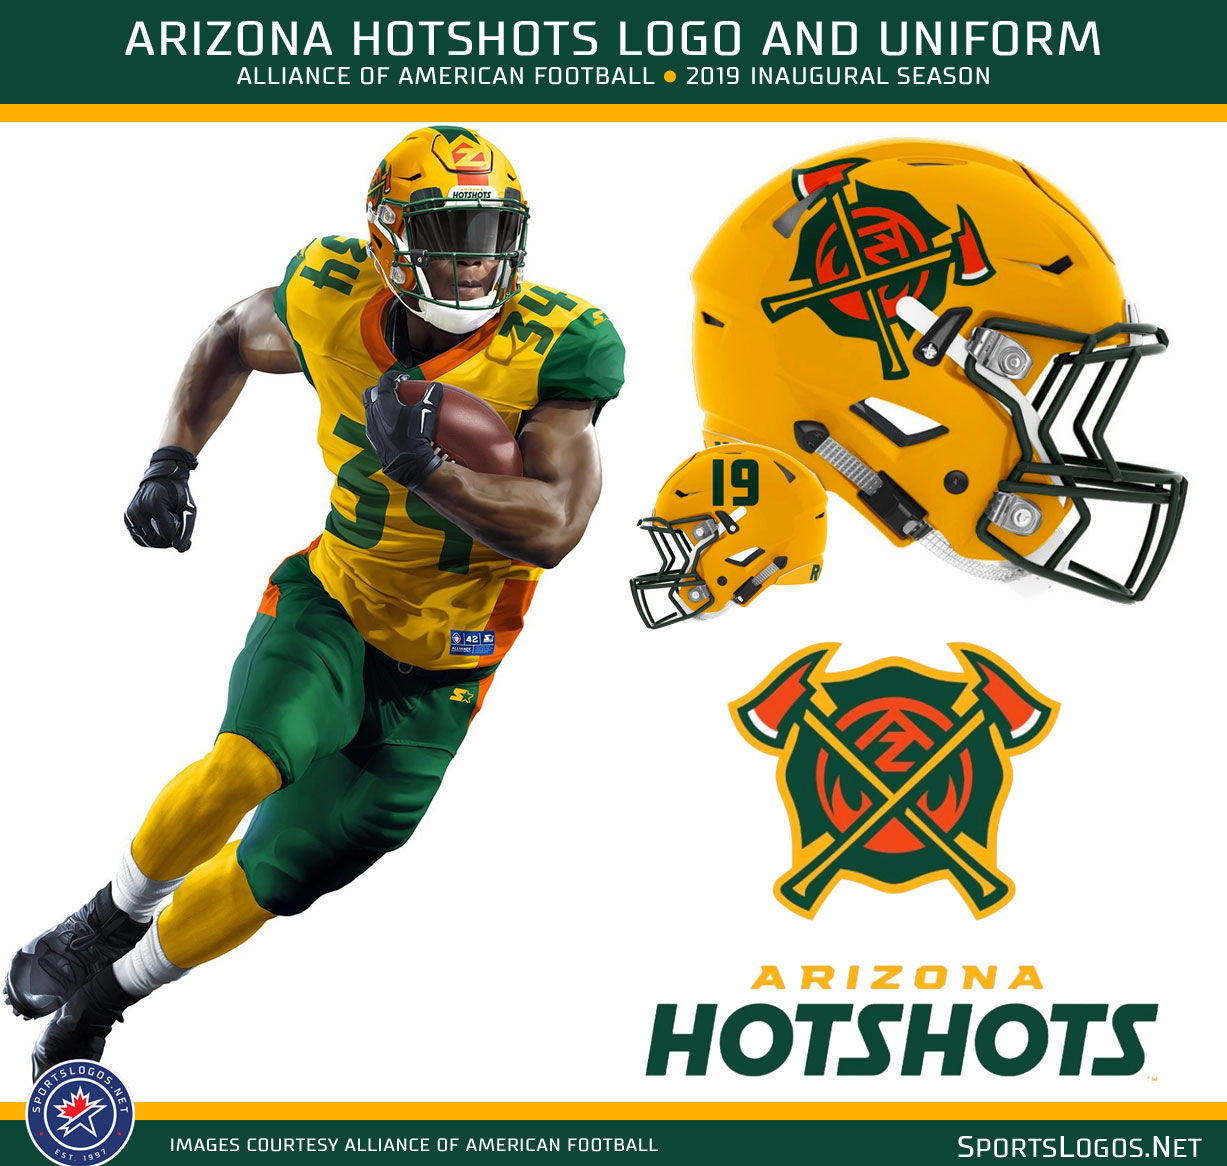 Arizona-Hotshots-AAF-Uniforms-2019.jpg